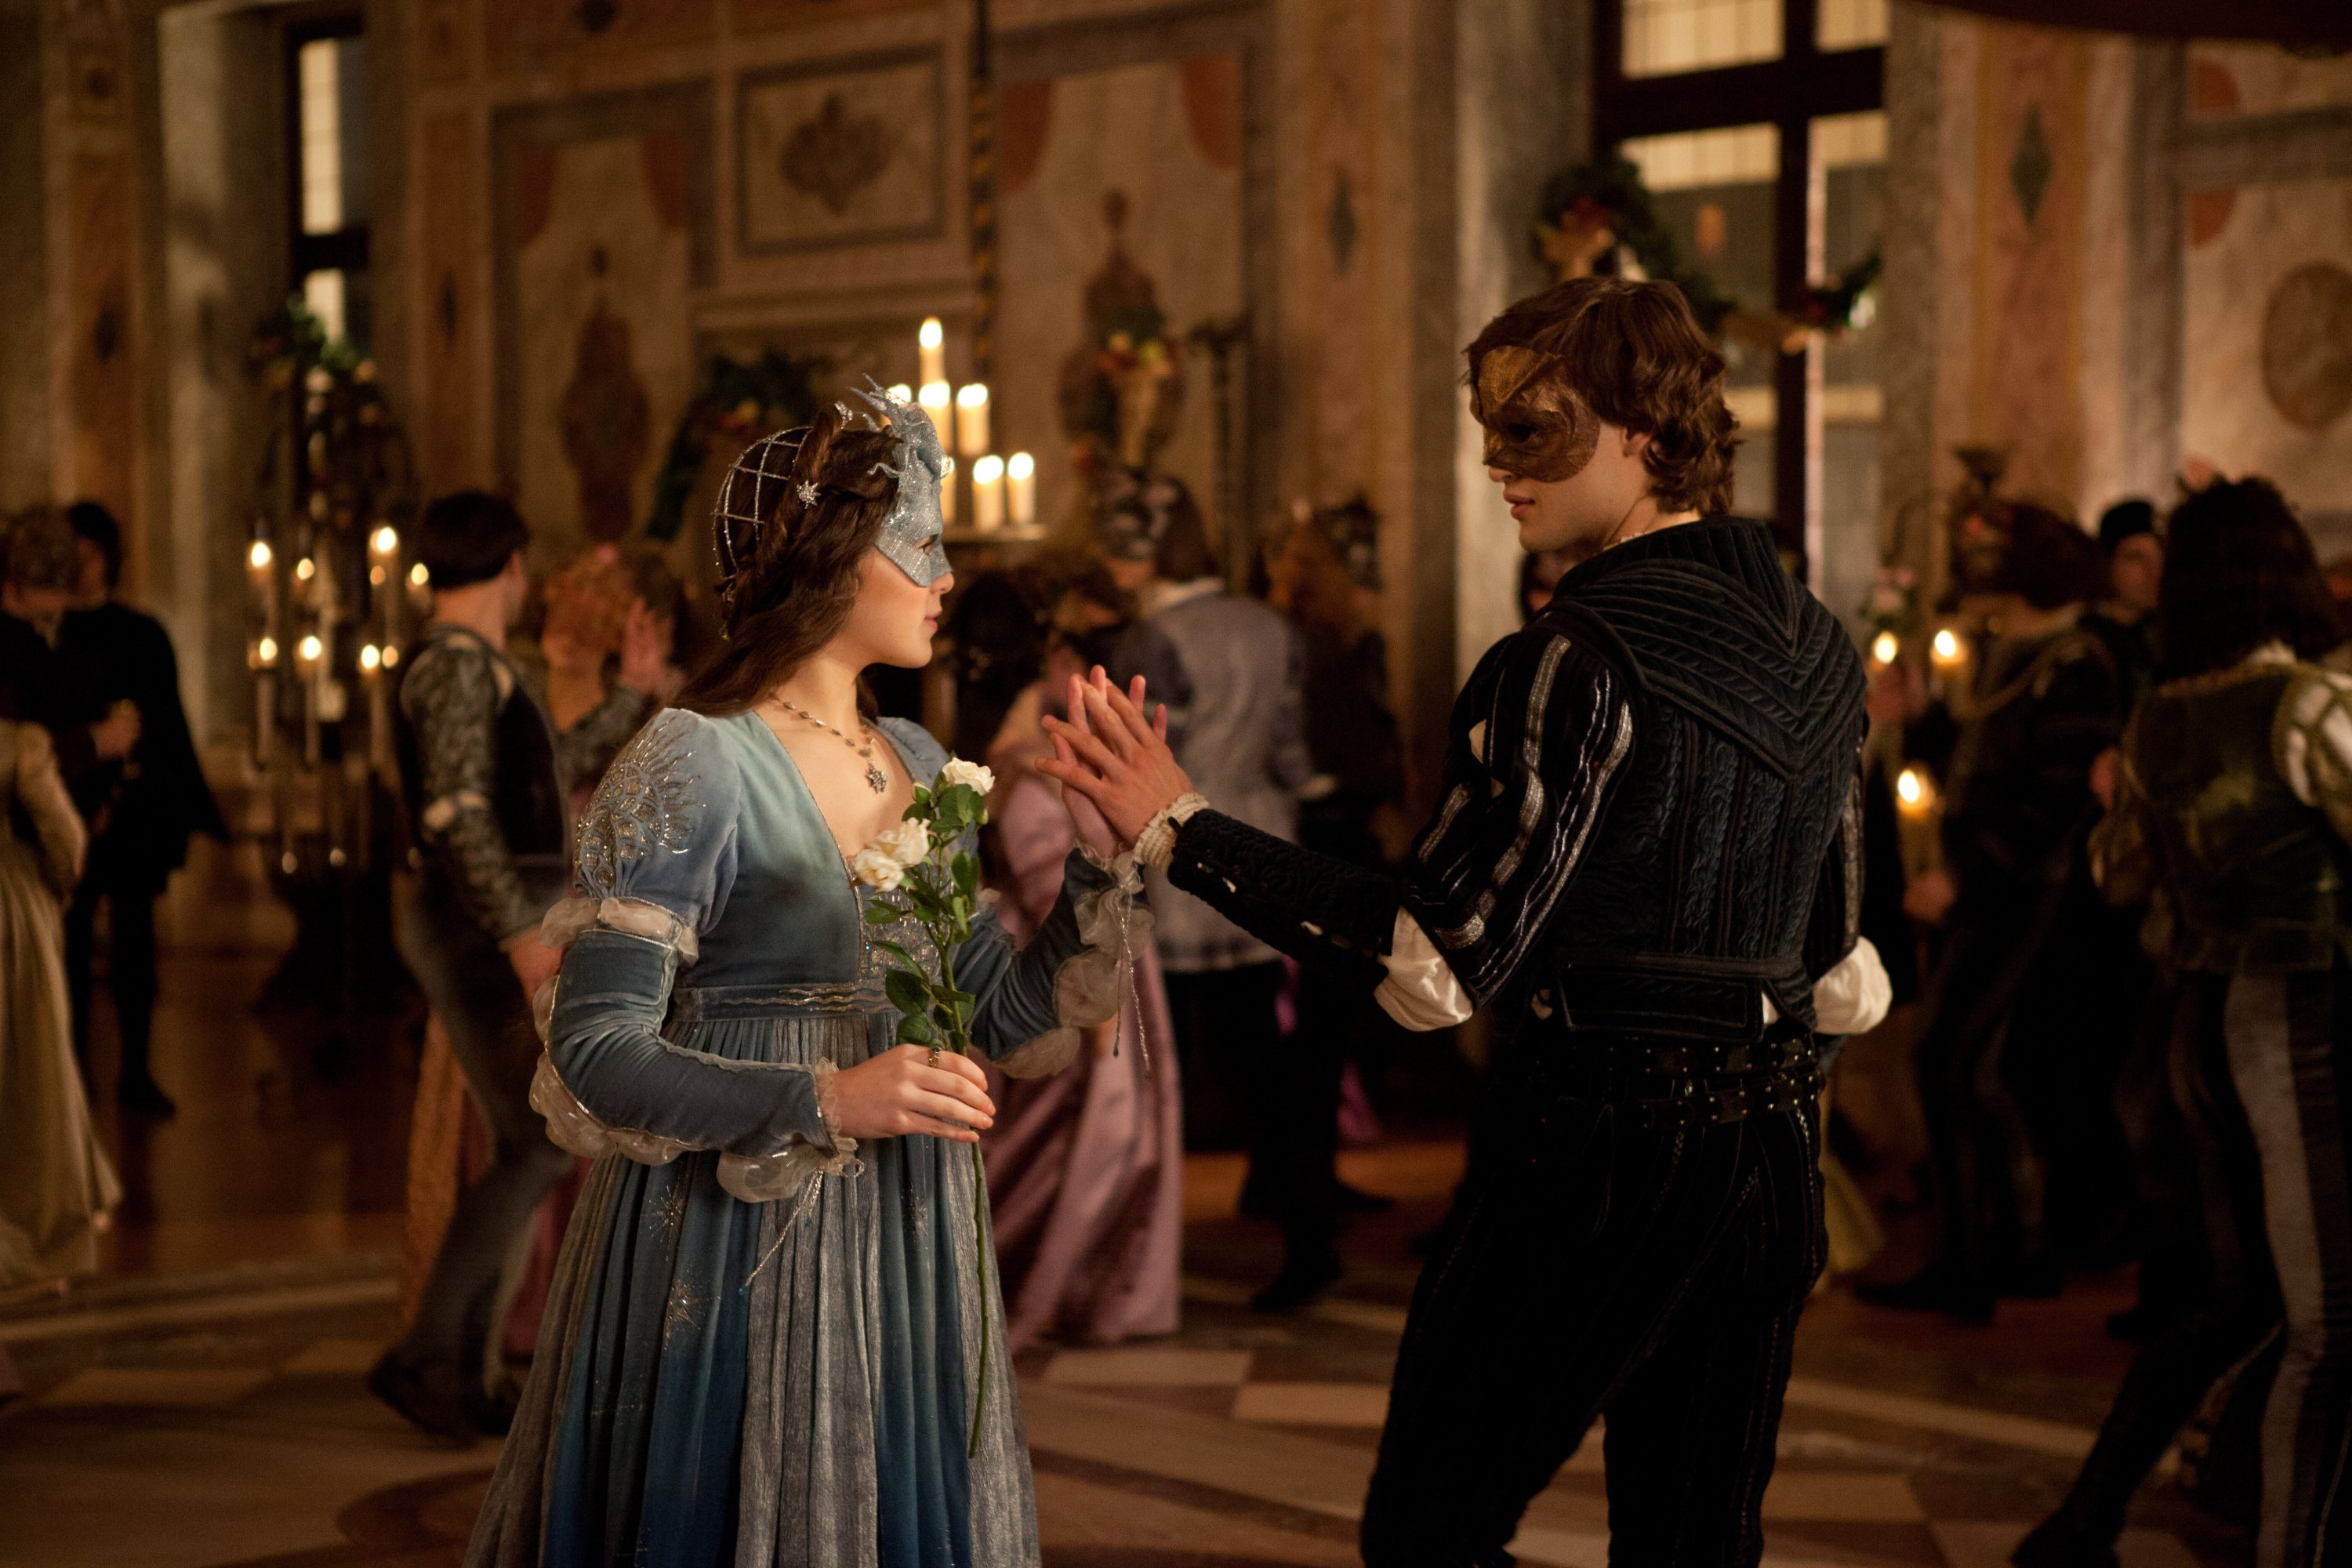 the delicate love affair in the romeo and juliet a play by william shakespeare Main stage: shakespeare in love love affair becomes the basis of the very play he is writing—romeo and juliet william shakespeare.